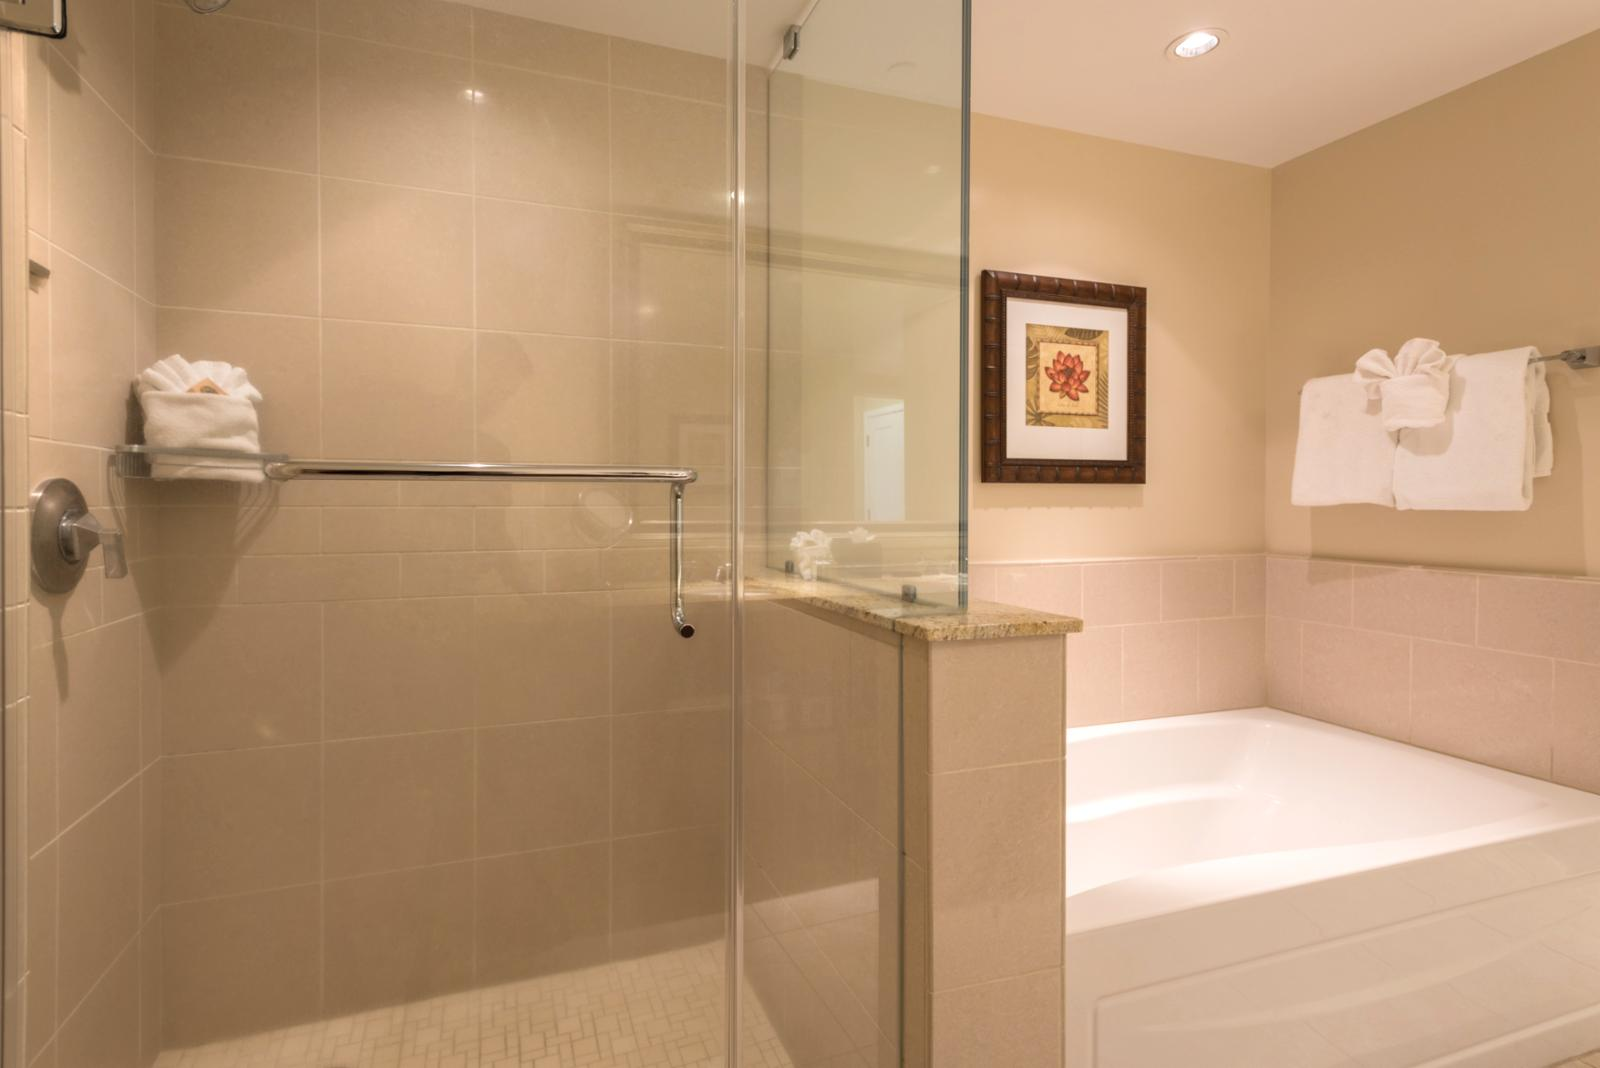 Master bathroom is complete with a glass enclosed shower and bath